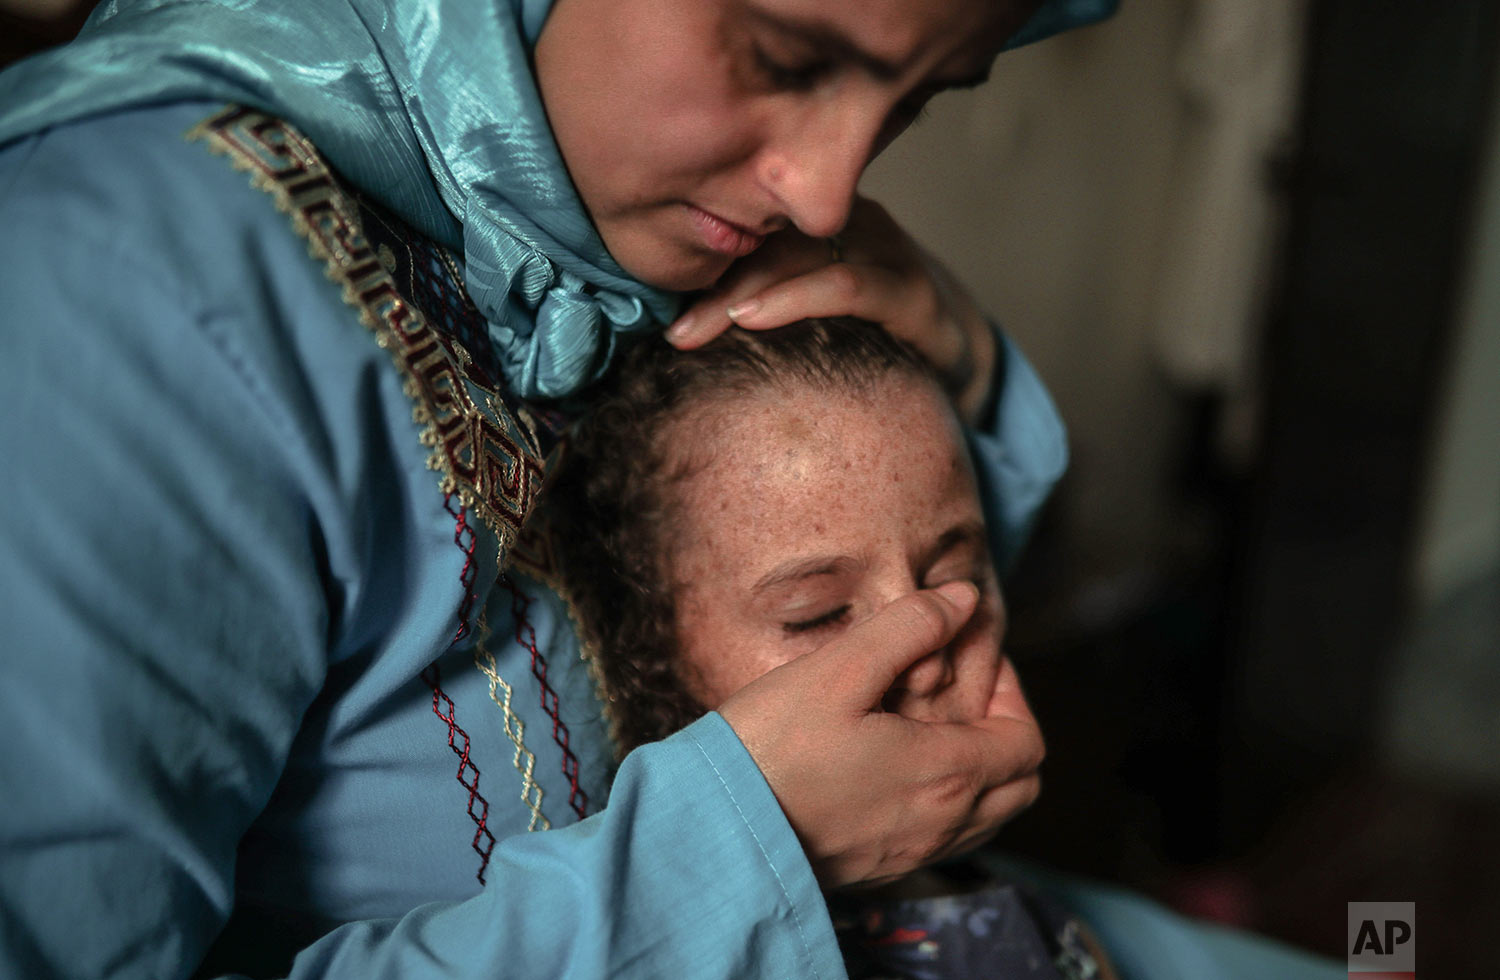 Maria El Maroufi, holds her 6 year old daughter Romaisae who is affected by a rare disorder called xeroderma pigmentosum, or XP, in their home in the town of Sale, near Rabat, Morocco, July 23, 2019. (AP Photo/Mosa'ab Elshamy)